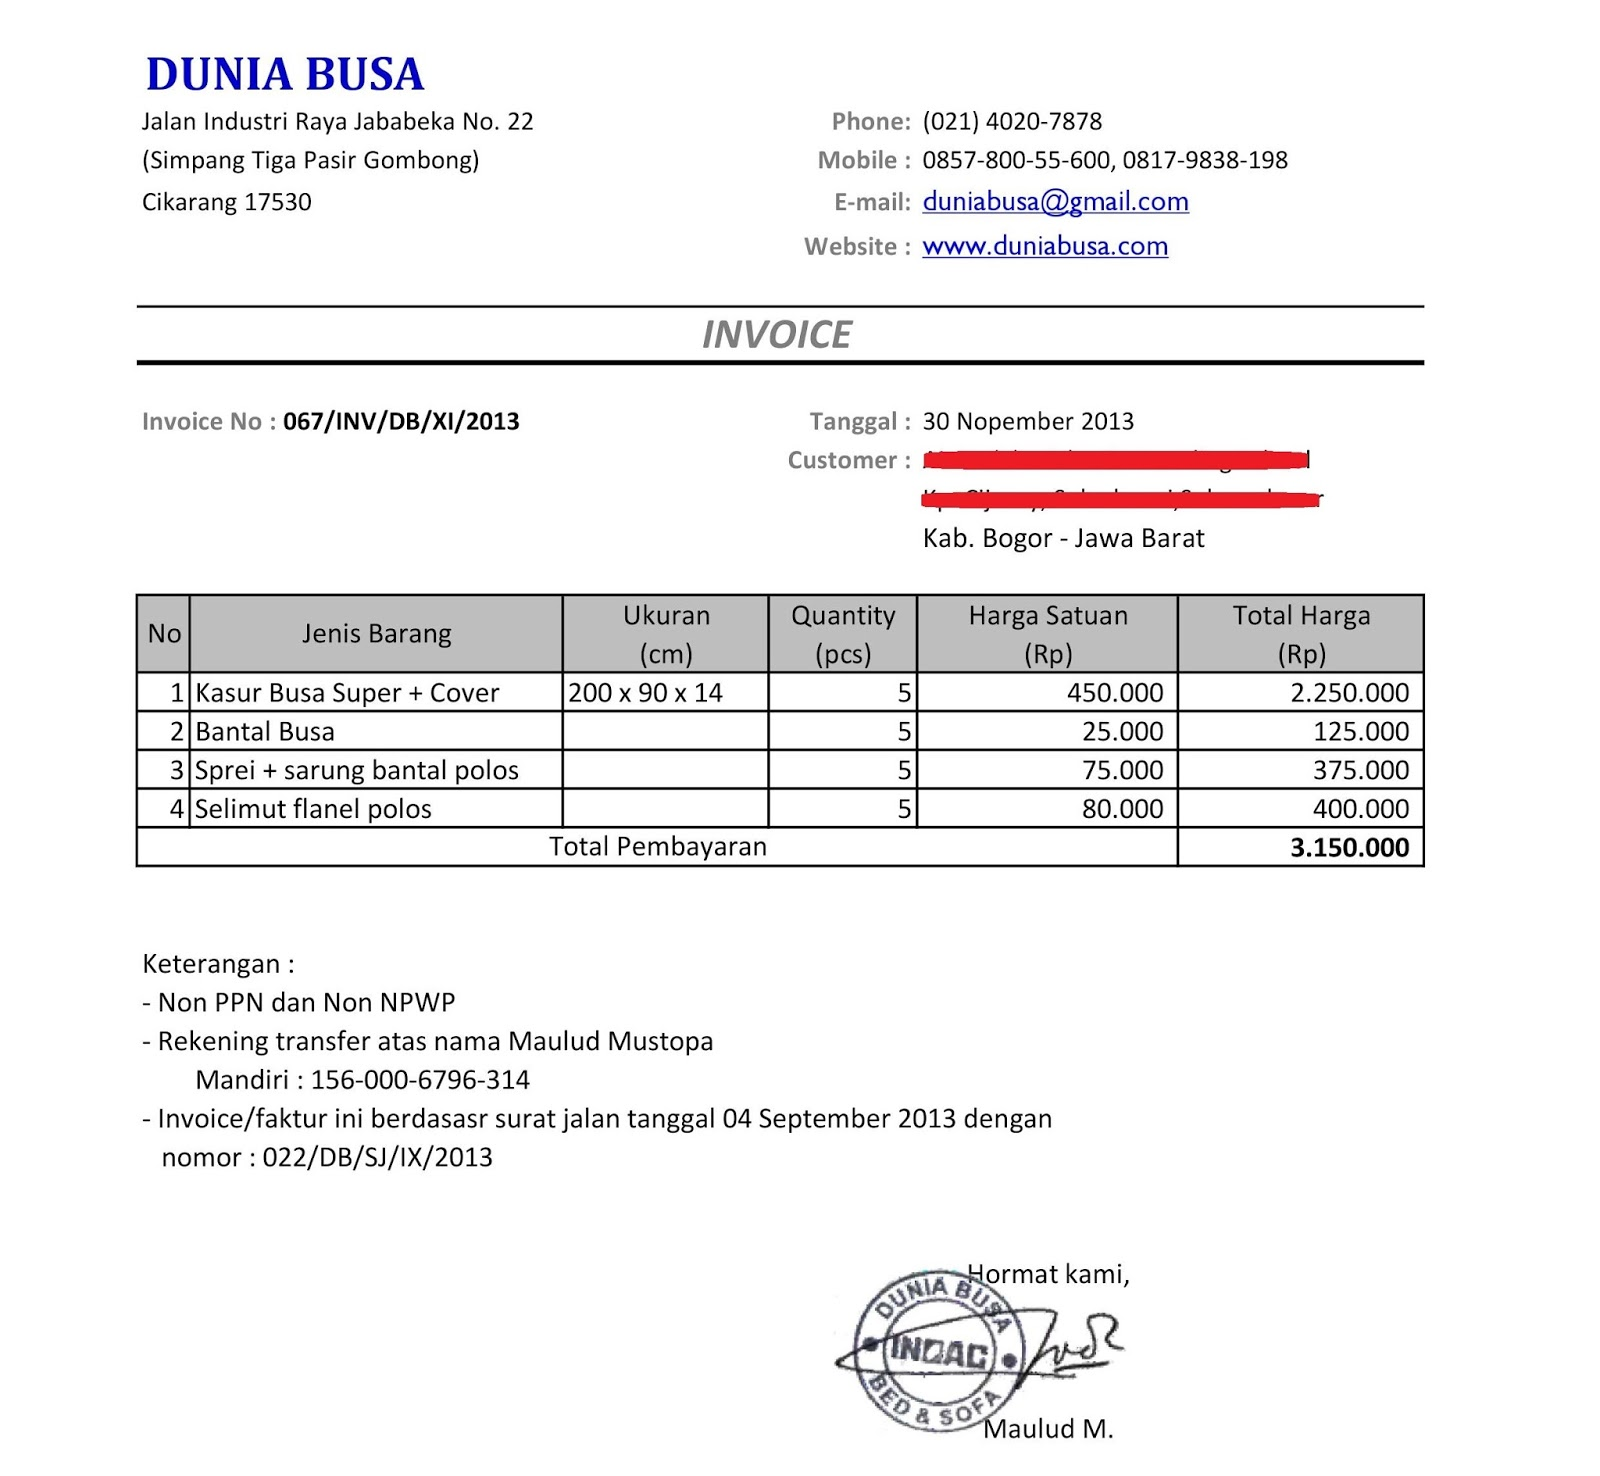 Centralasianshepherdus  Unusual Free Invoice Online  Create Invoice Online  Invoice Template  With Extraordinary Contoh Format Invoice Atau Surat Tagihan  Brankas Arsip  Free Invoice Online With Comely Mock Invoice Also Invoicing Programs In Addition Invoice Organizer And Freight Invoice As Well As Blank Invoice Printable Additionally Bill Invoice From Sklepco With Centralasianshepherdus  Extraordinary Free Invoice Online  Create Invoice Online  Invoice Template  With Comely Contoh Format Invoice Atau Surat Tagihan  Brankas Arsip  Free Invoice Online And Unusual Mock Invoice Also Invoicing Programs In Addition Invoice Organizer From Sklepco